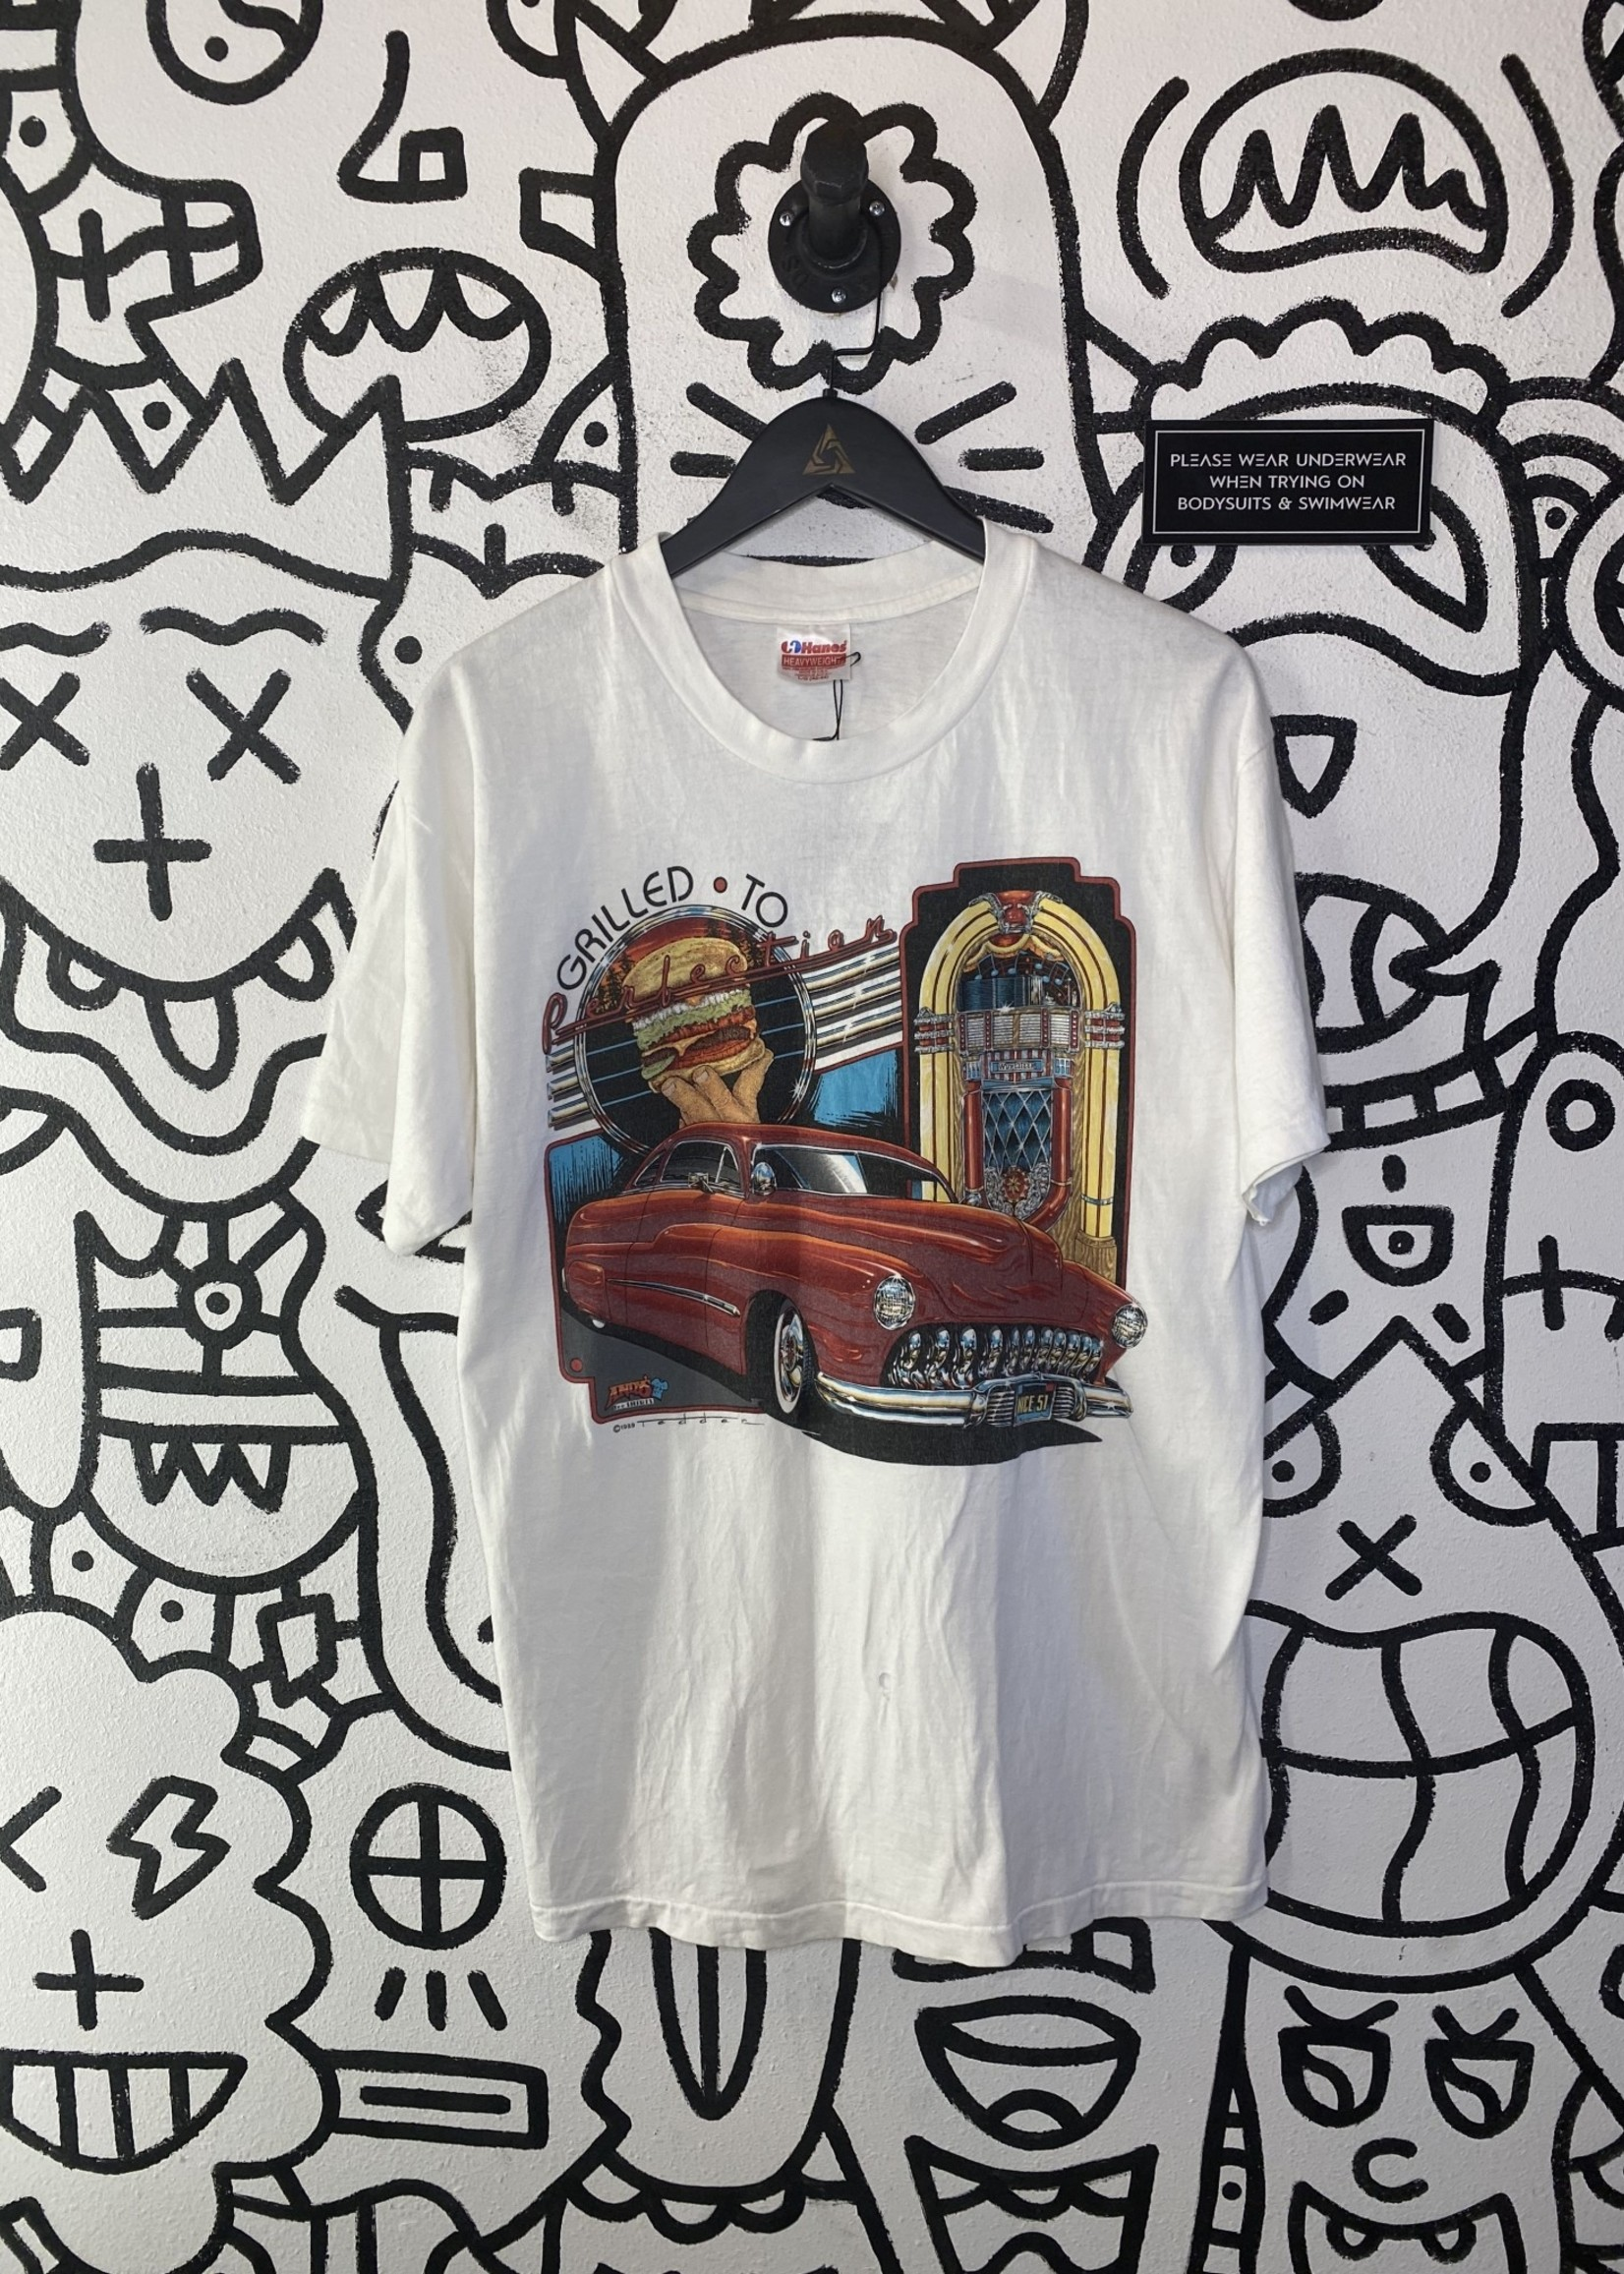 Andy's Grilled to Perfection White Vintage '89 Tee XL